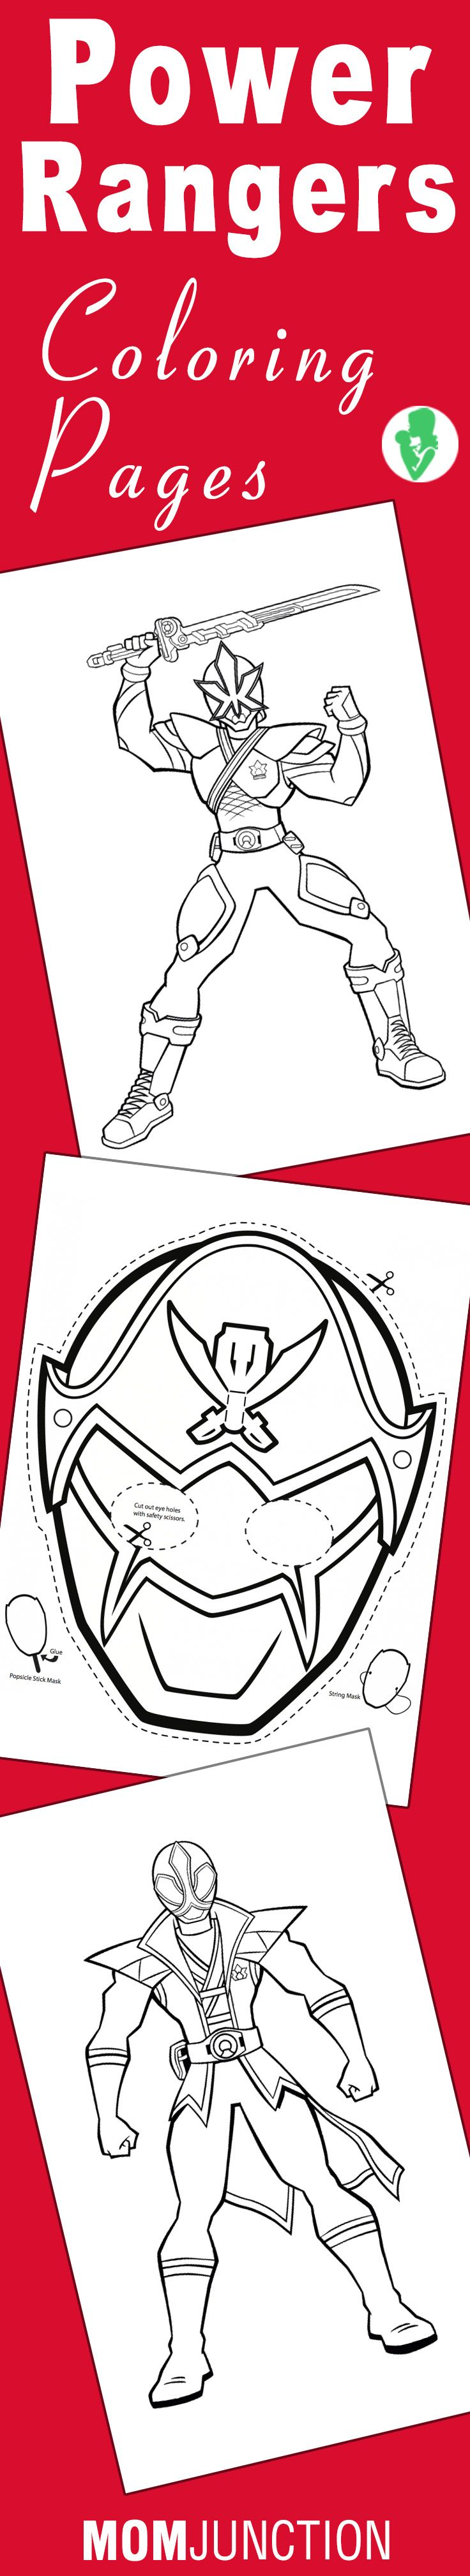 Free online coloring pages of power rangers - Top 25 Free Printable Power Rangers Megaforce Coloring Pages Online